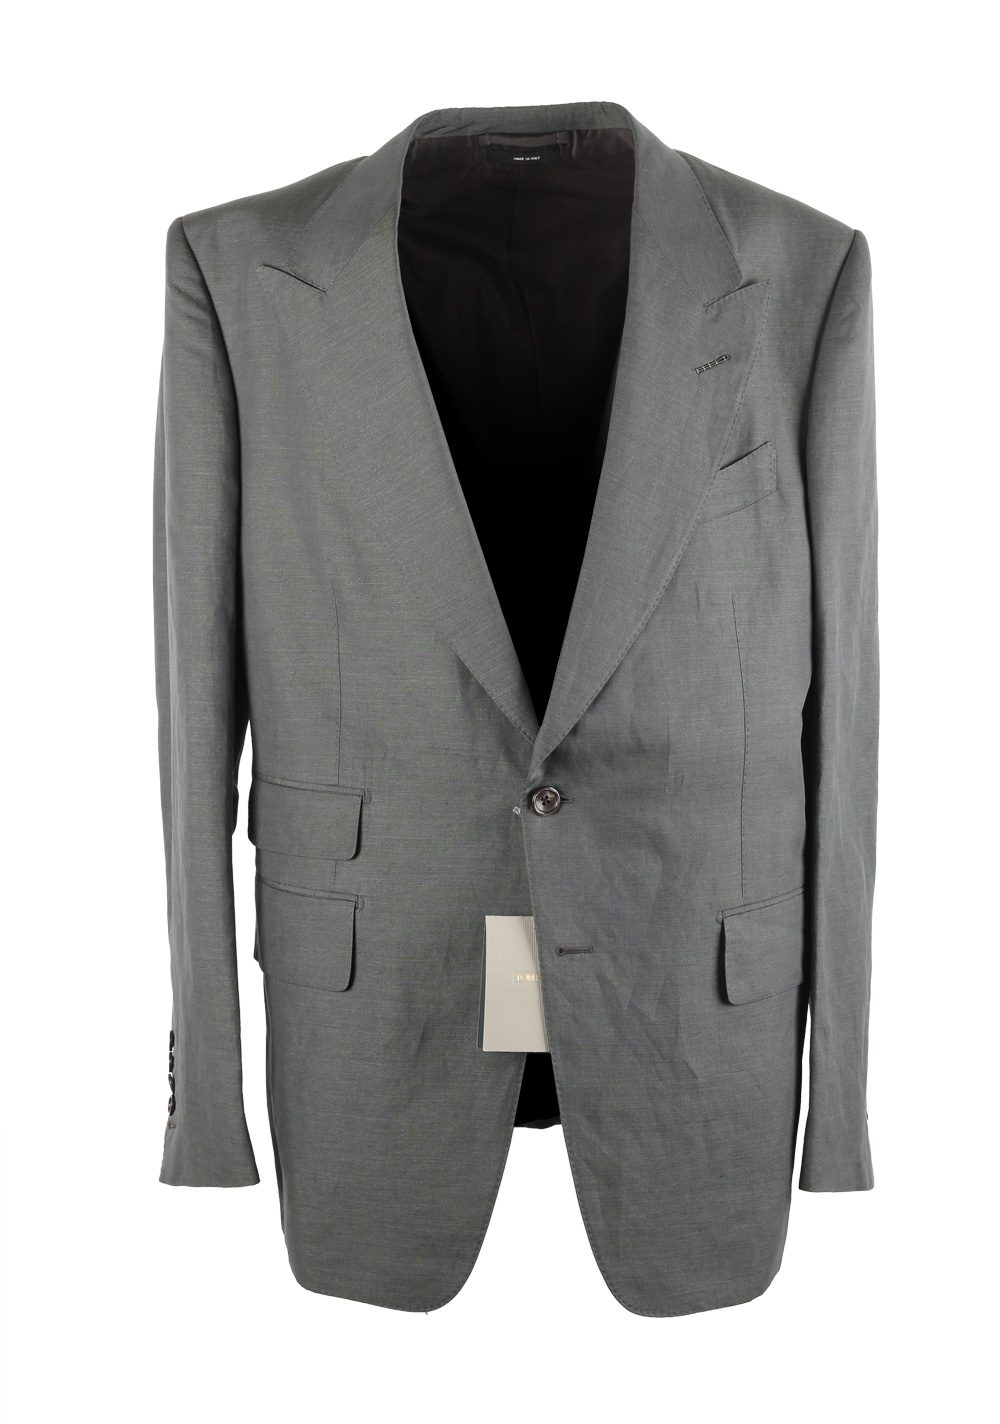 TOM FORD Shelton Greenish Gray Suit Size 54 / 44 U.S. | Costume Limité